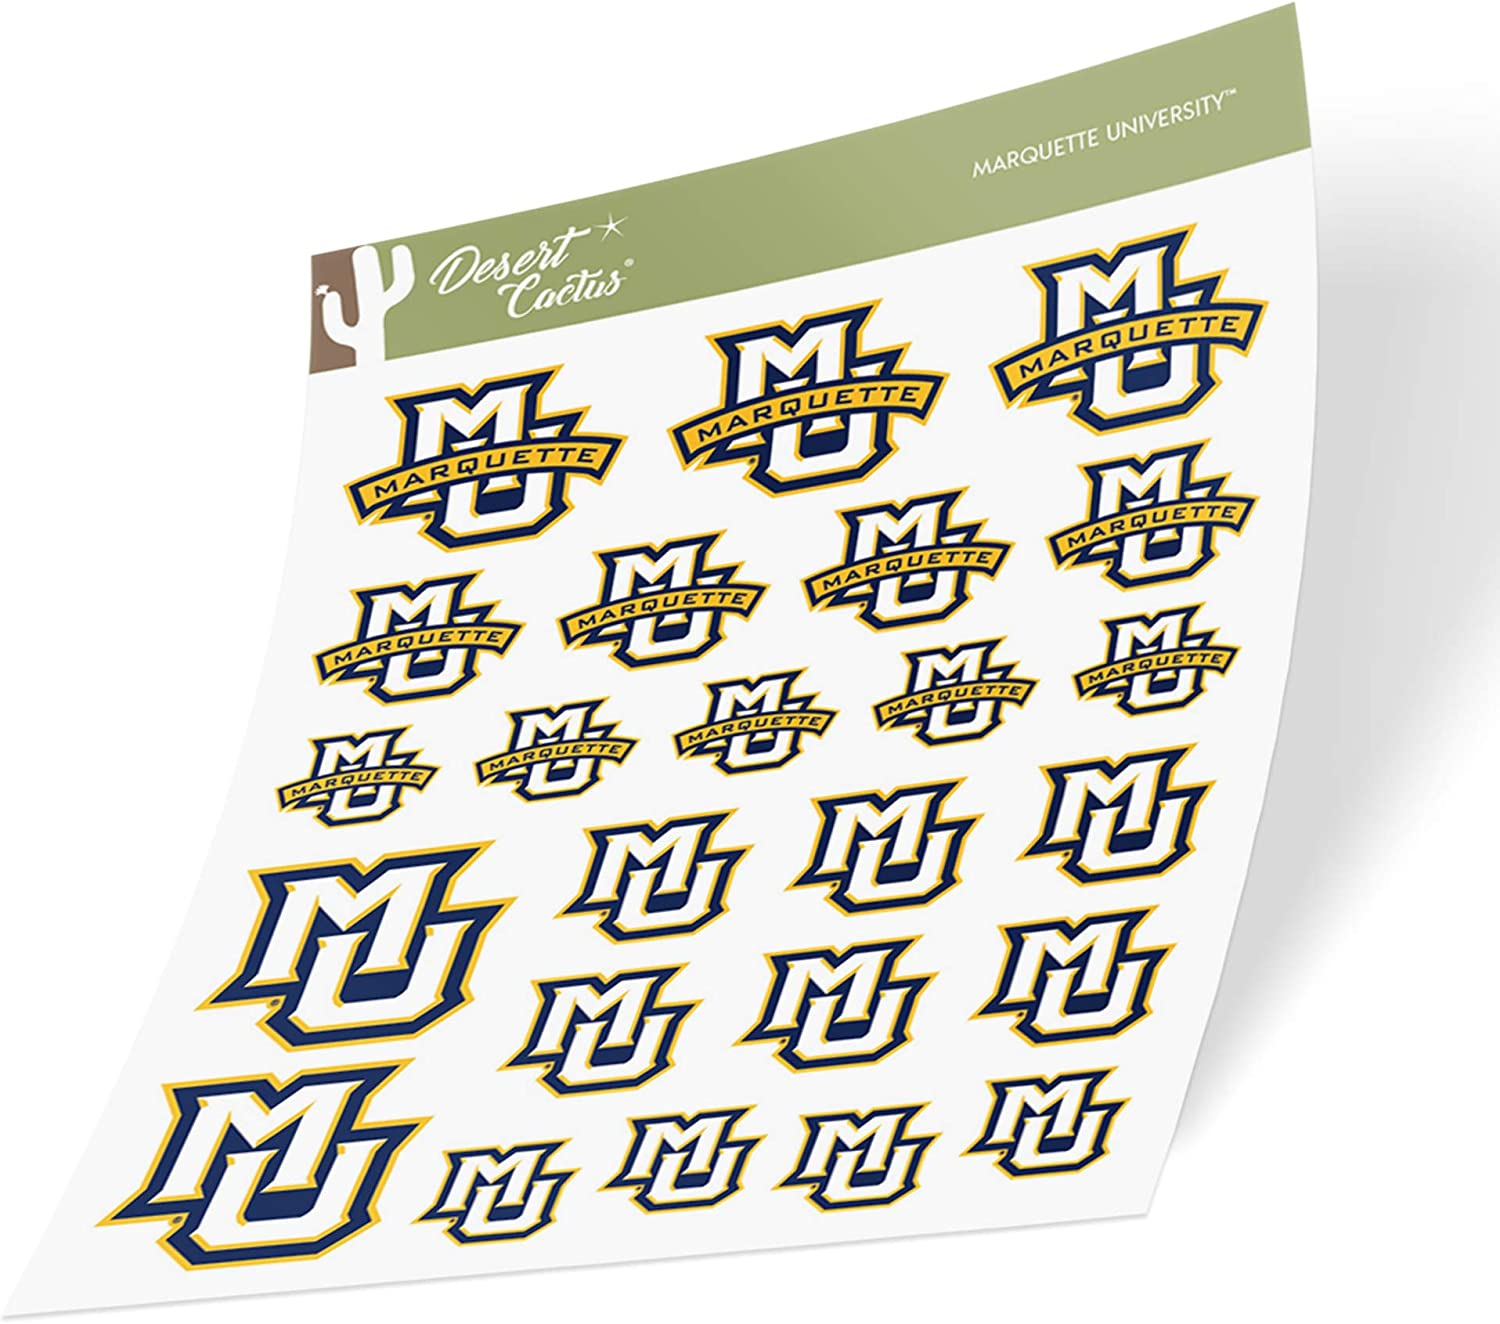 15 Inch Sticker Marquette University Golden Eagles NCAA Name Logo Vinyl Decal Laptop Water Bottle Car Scrapbook